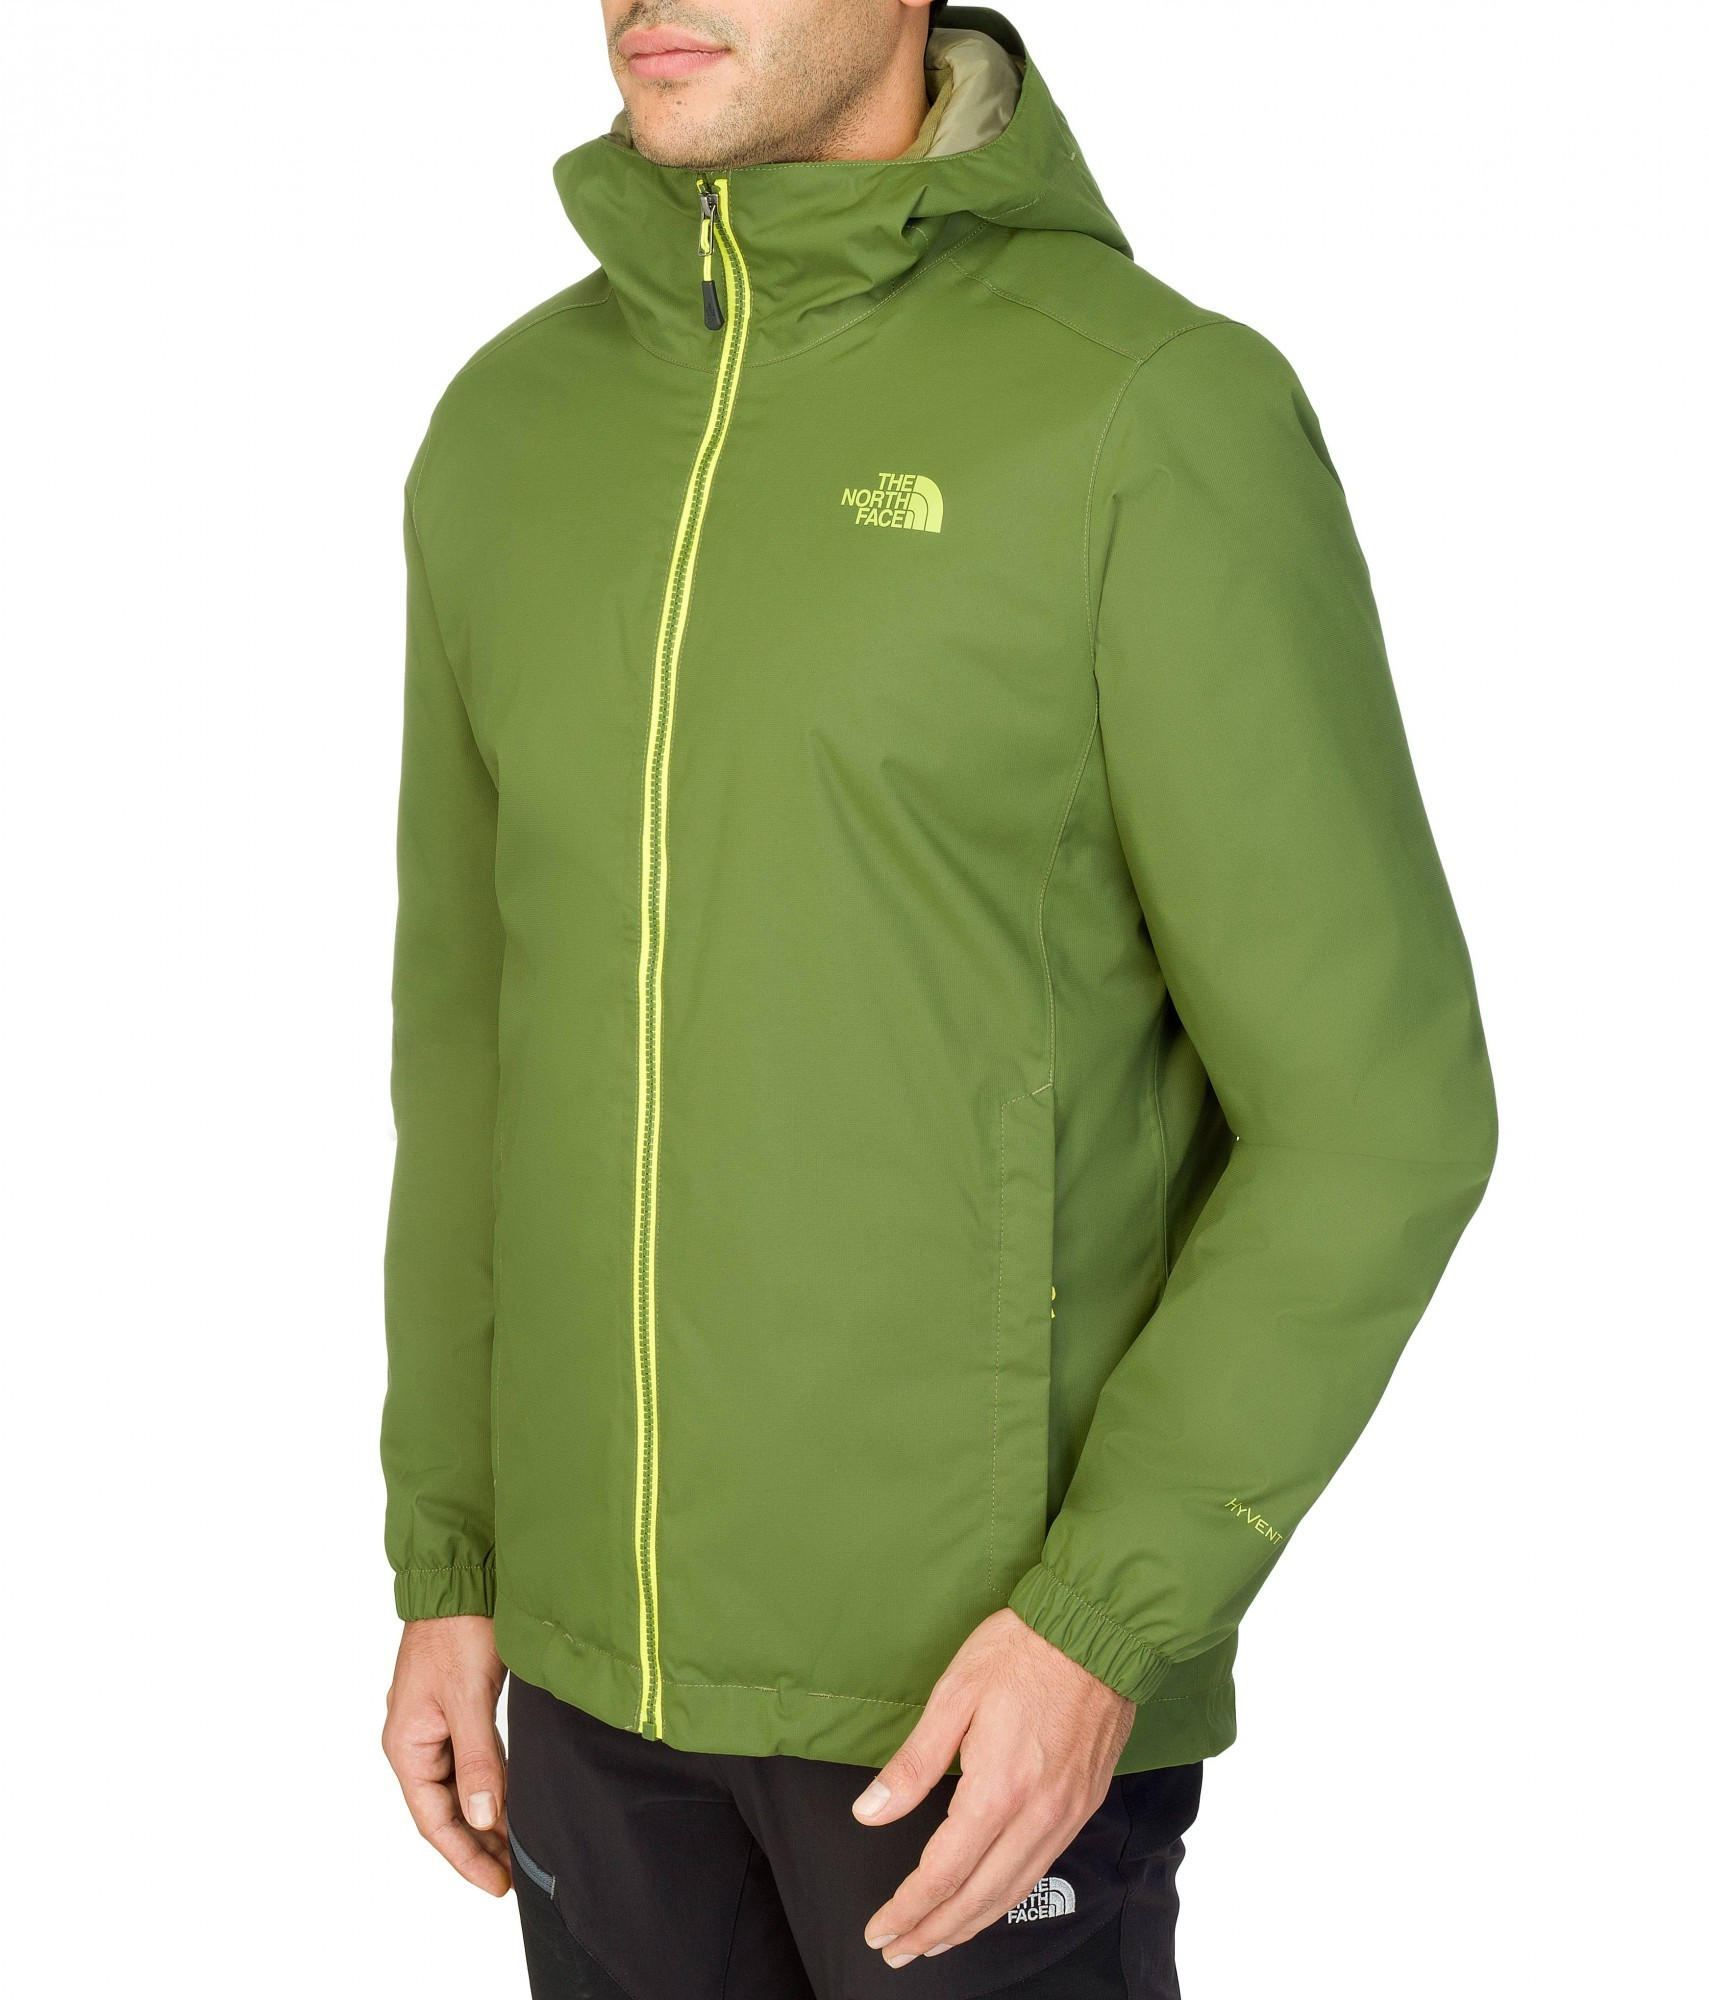 The north face. THE NORTH FACE GIACCA UOMO QUEST INSULATED 66d4156c3d95